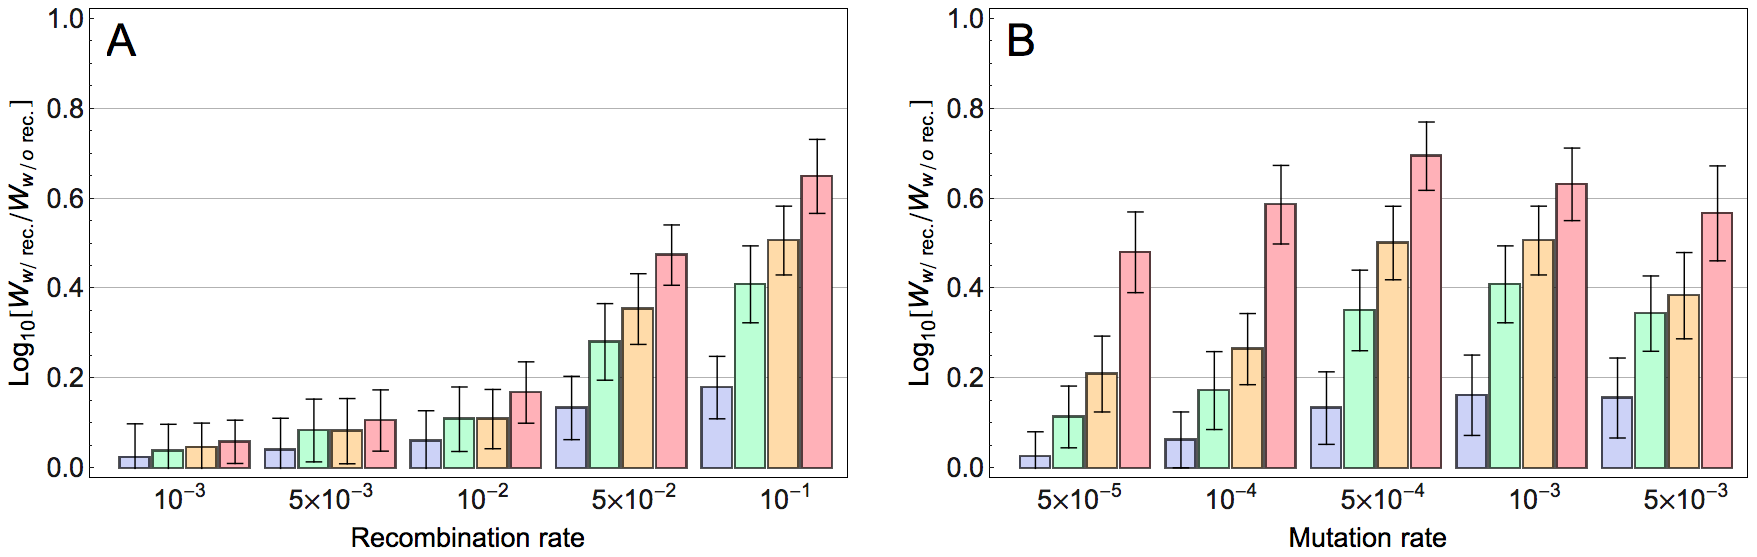 Effect of model parameters on the impact of recombination on adaptation.